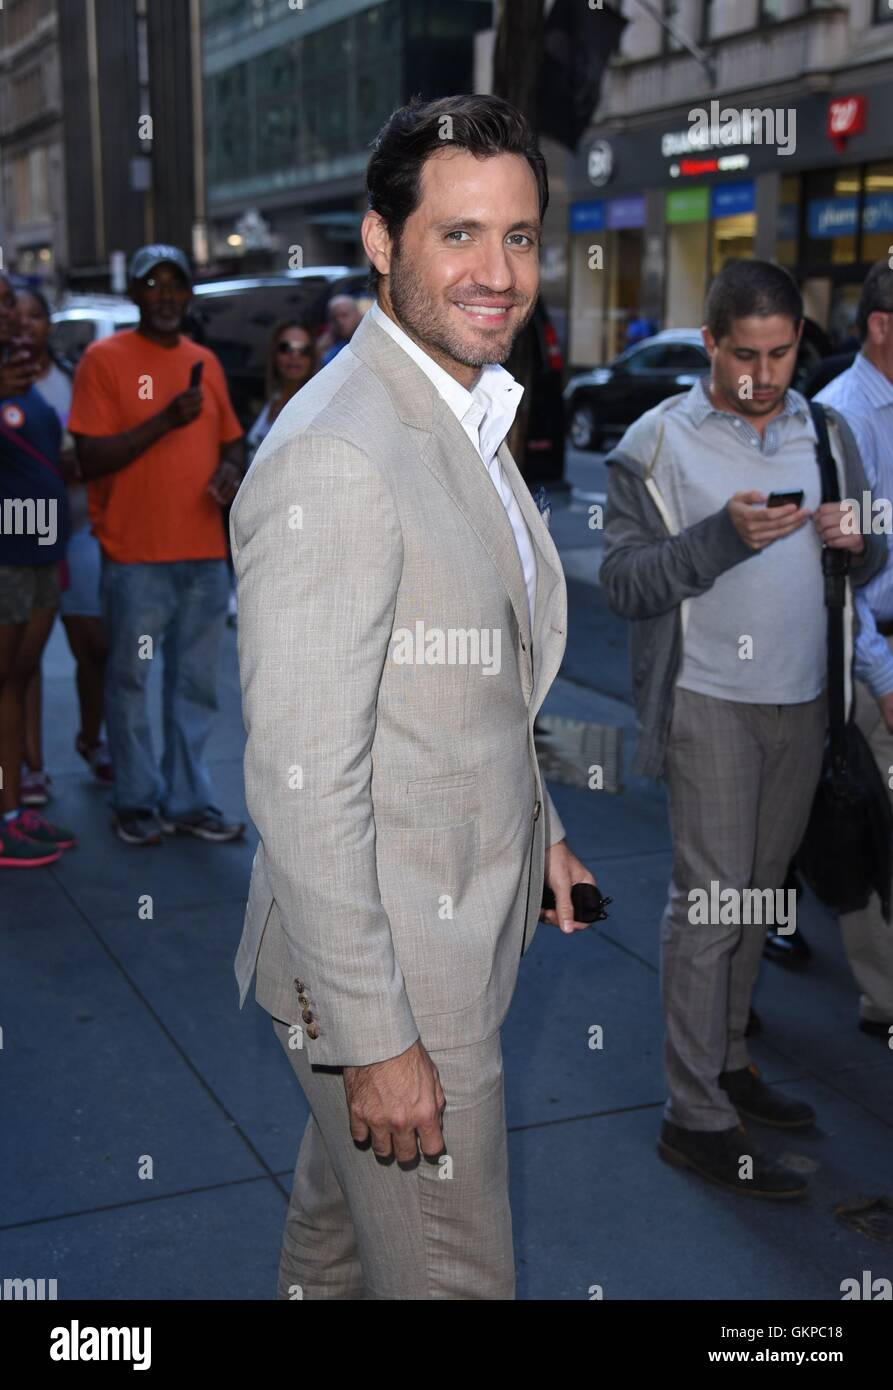 New York, NY, USA. 22nd Aug, 2016. Edgar Ramirez out and about for Celebrity Candids - MON, New York, NY August Stock Photo